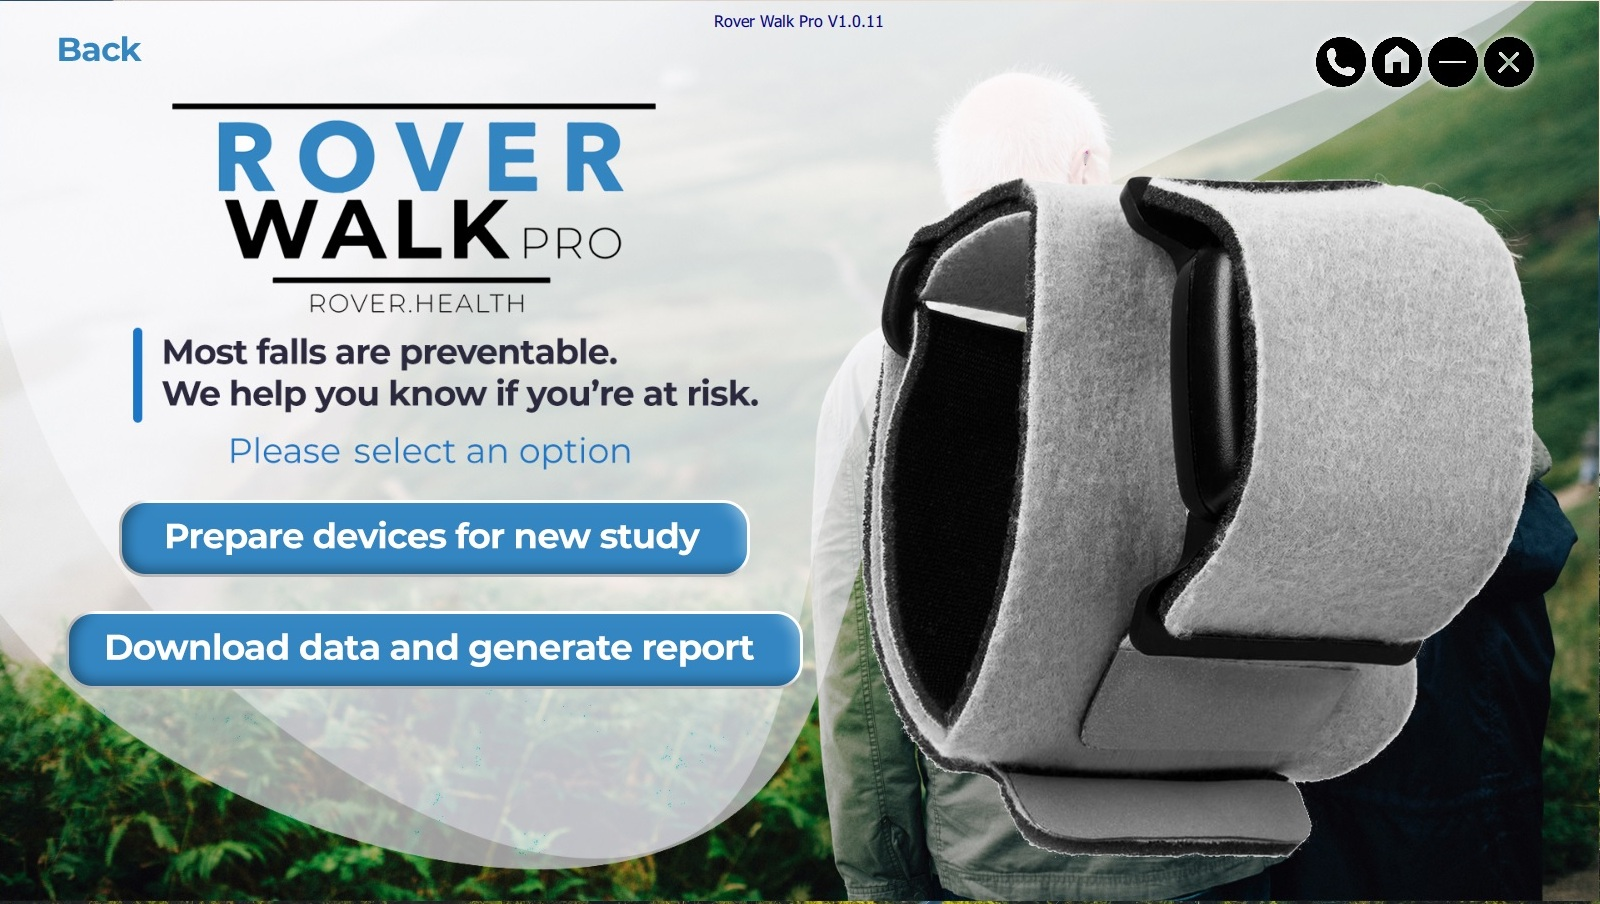 Rover Walk Pro - Rover Walk Pro is a comprehensive gait analysis and fall risk assessment software designed for use in Senior Living facilities, Clinical Trials, and human motion research.